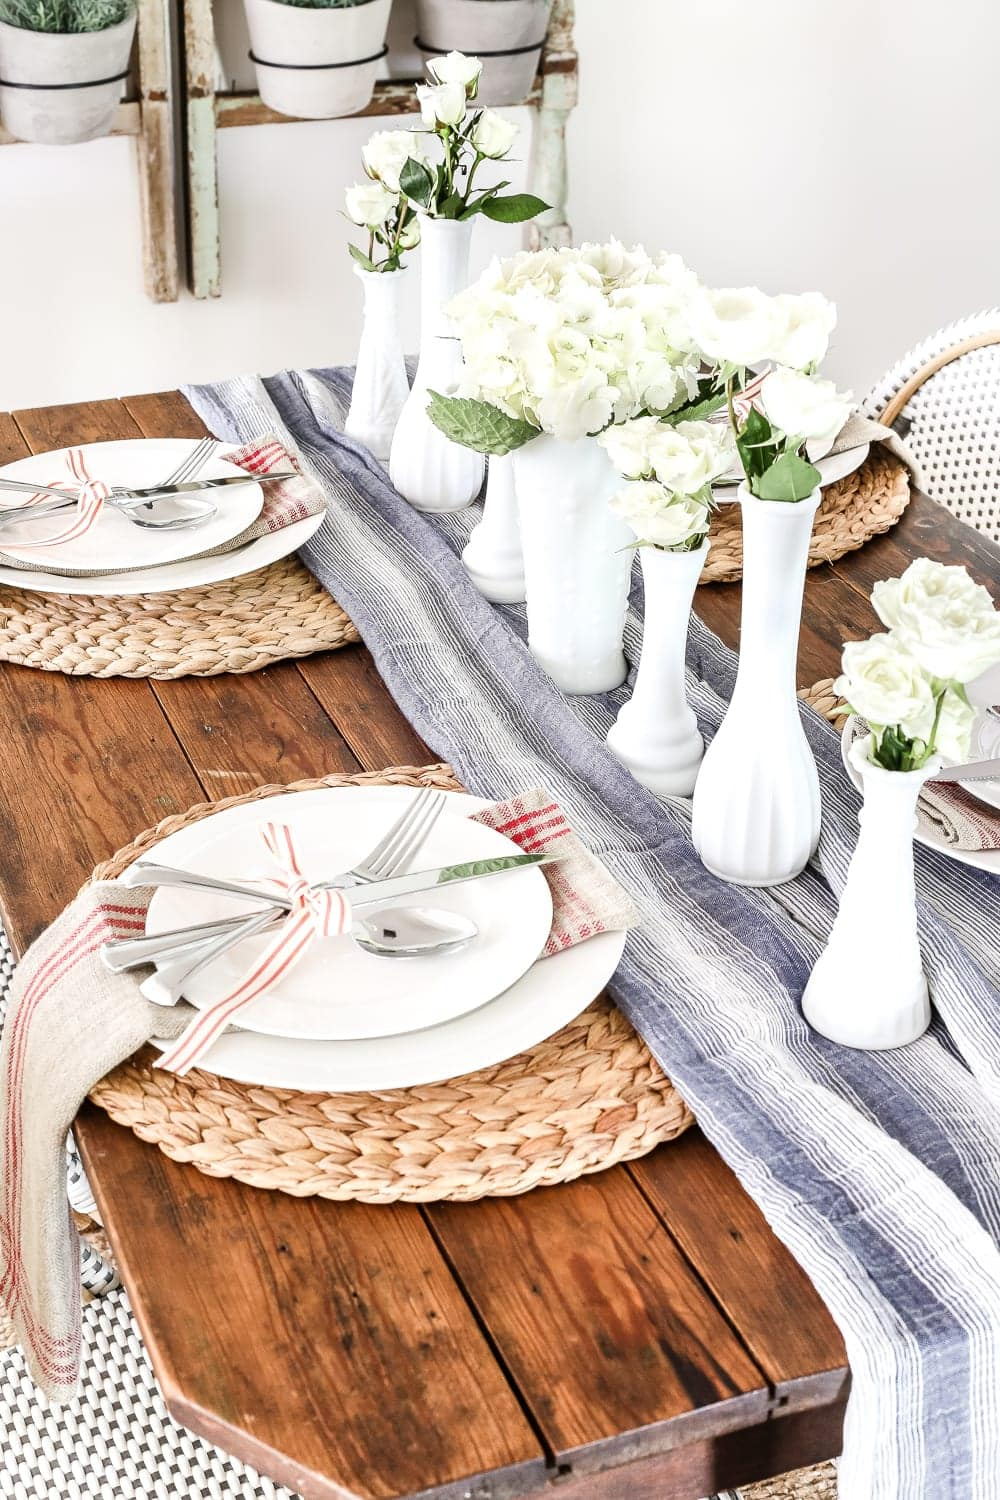 A rustic farmhouse style patriotic table setting.